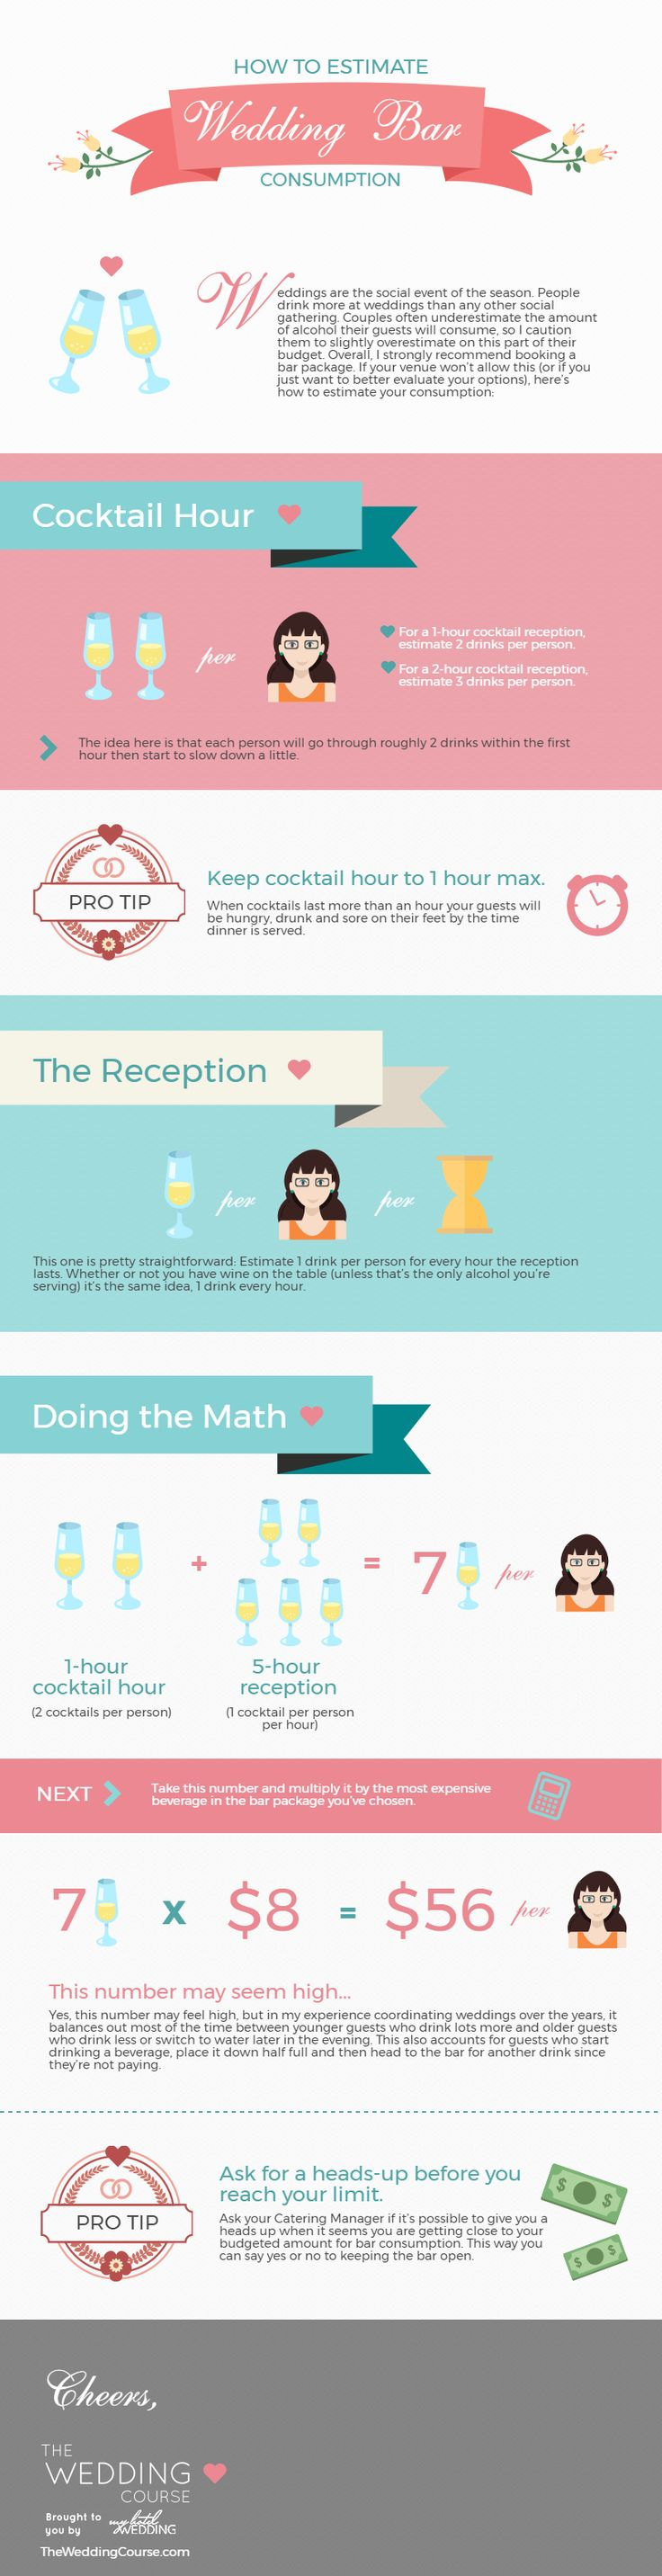 Accurately Estimate Your Bar Consumption Via Huffpost Weddings